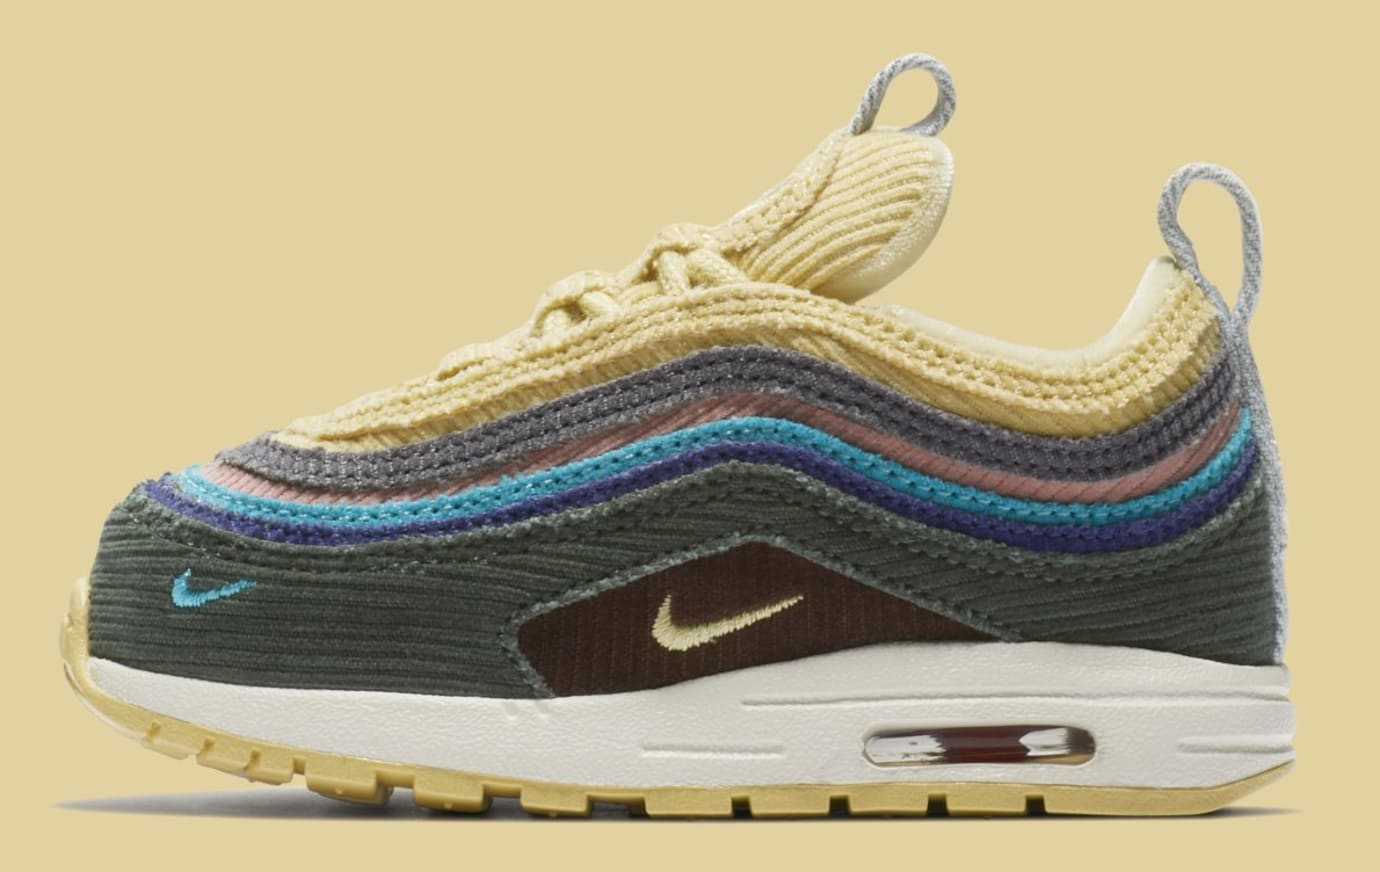 Sean Wotherspoon x Nike Air Max 1/97 Toddler BQ1670-400 (Lateral)